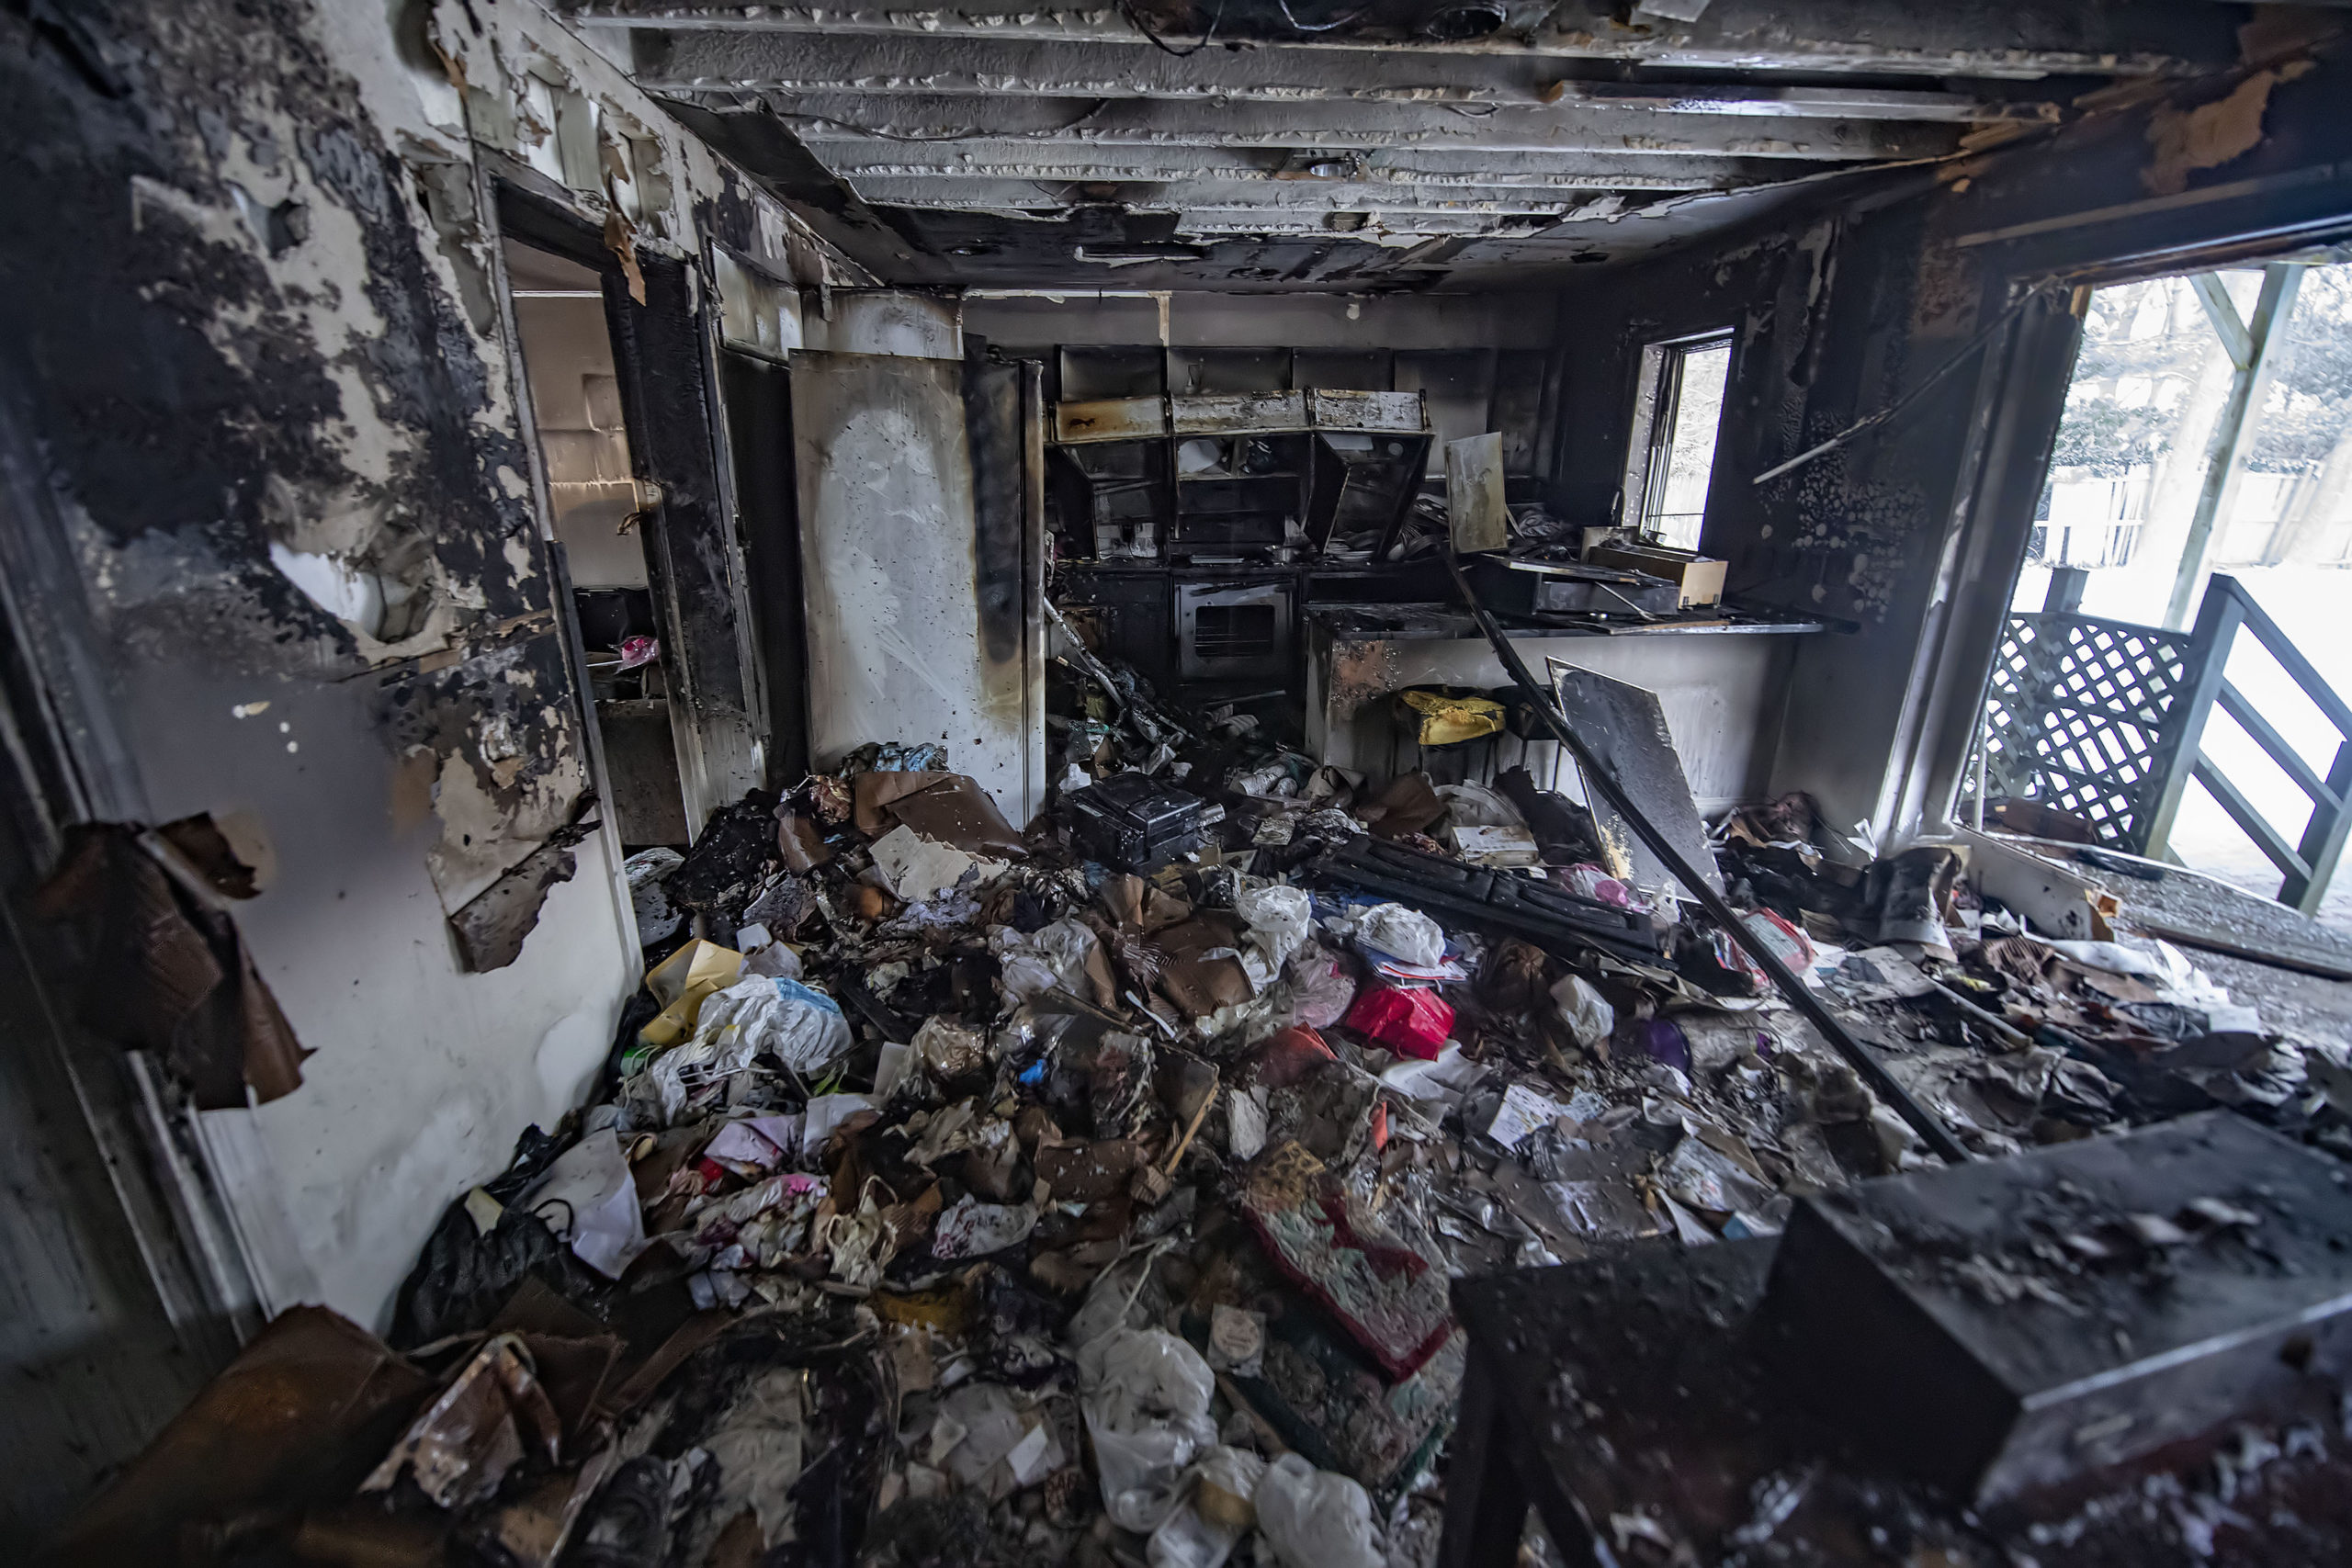 A view inside the kitchen area inside the residence following the working house fire at 38 Cove Hollow Road in East Hampton on Saturday.  MICHAEL HELLER